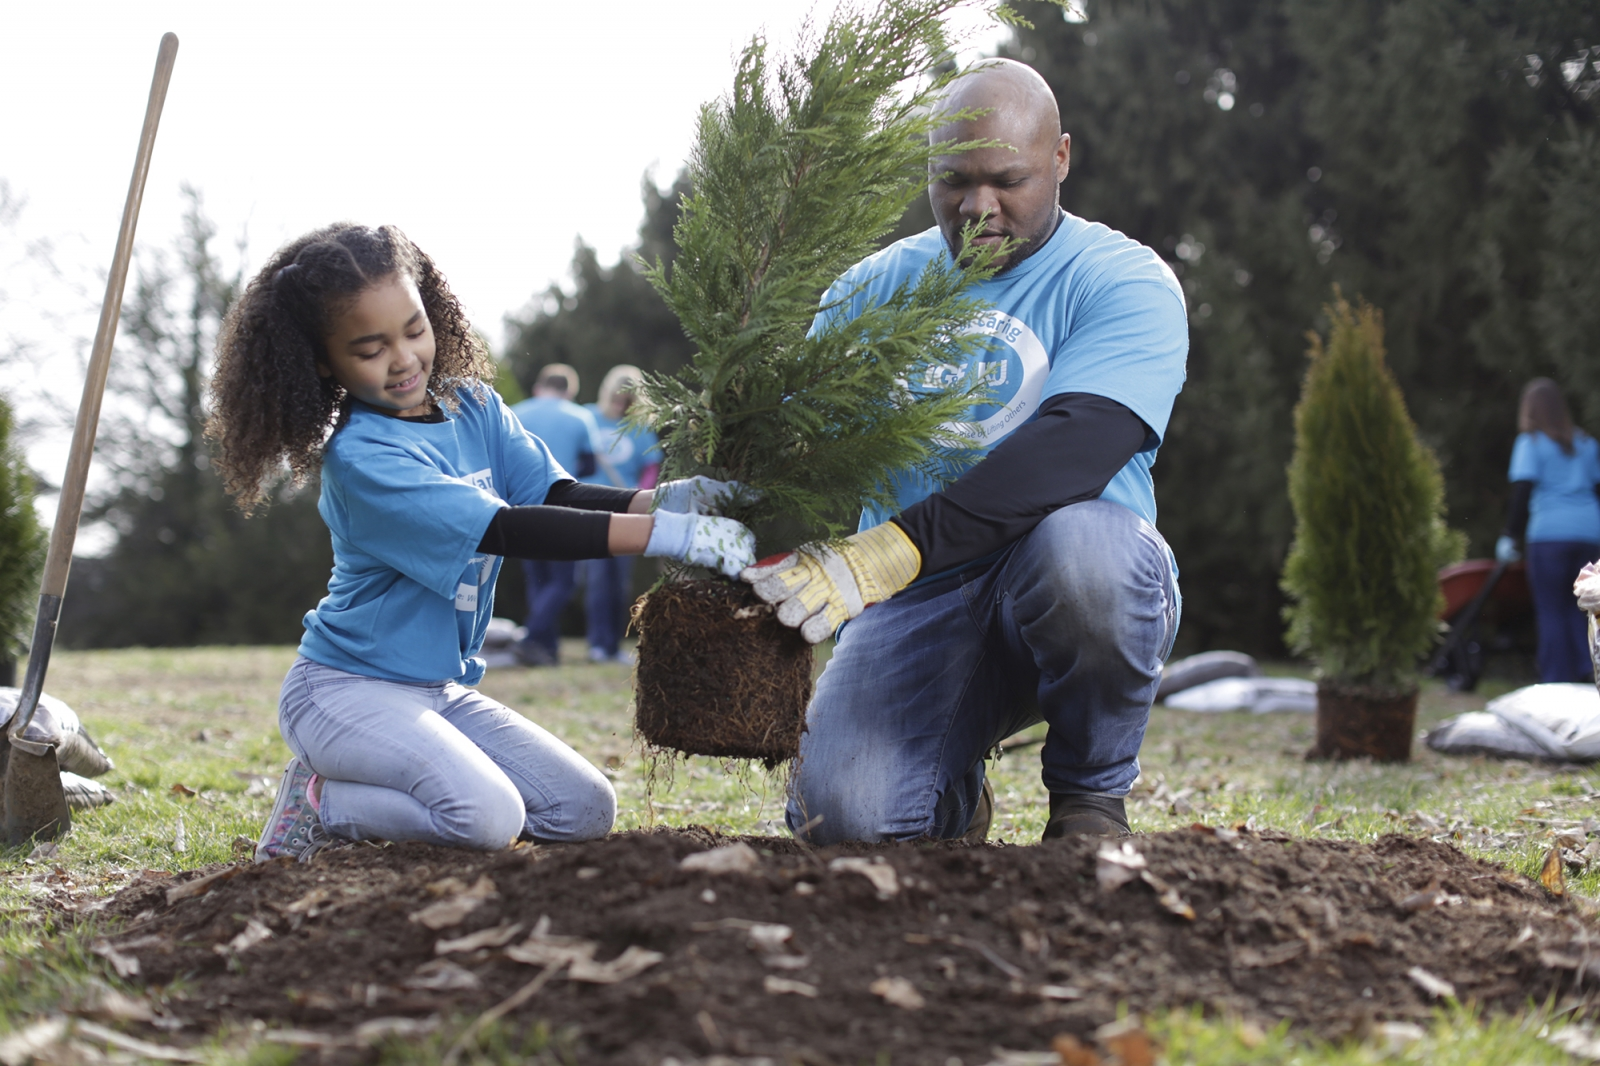 father and daughter planting a tree